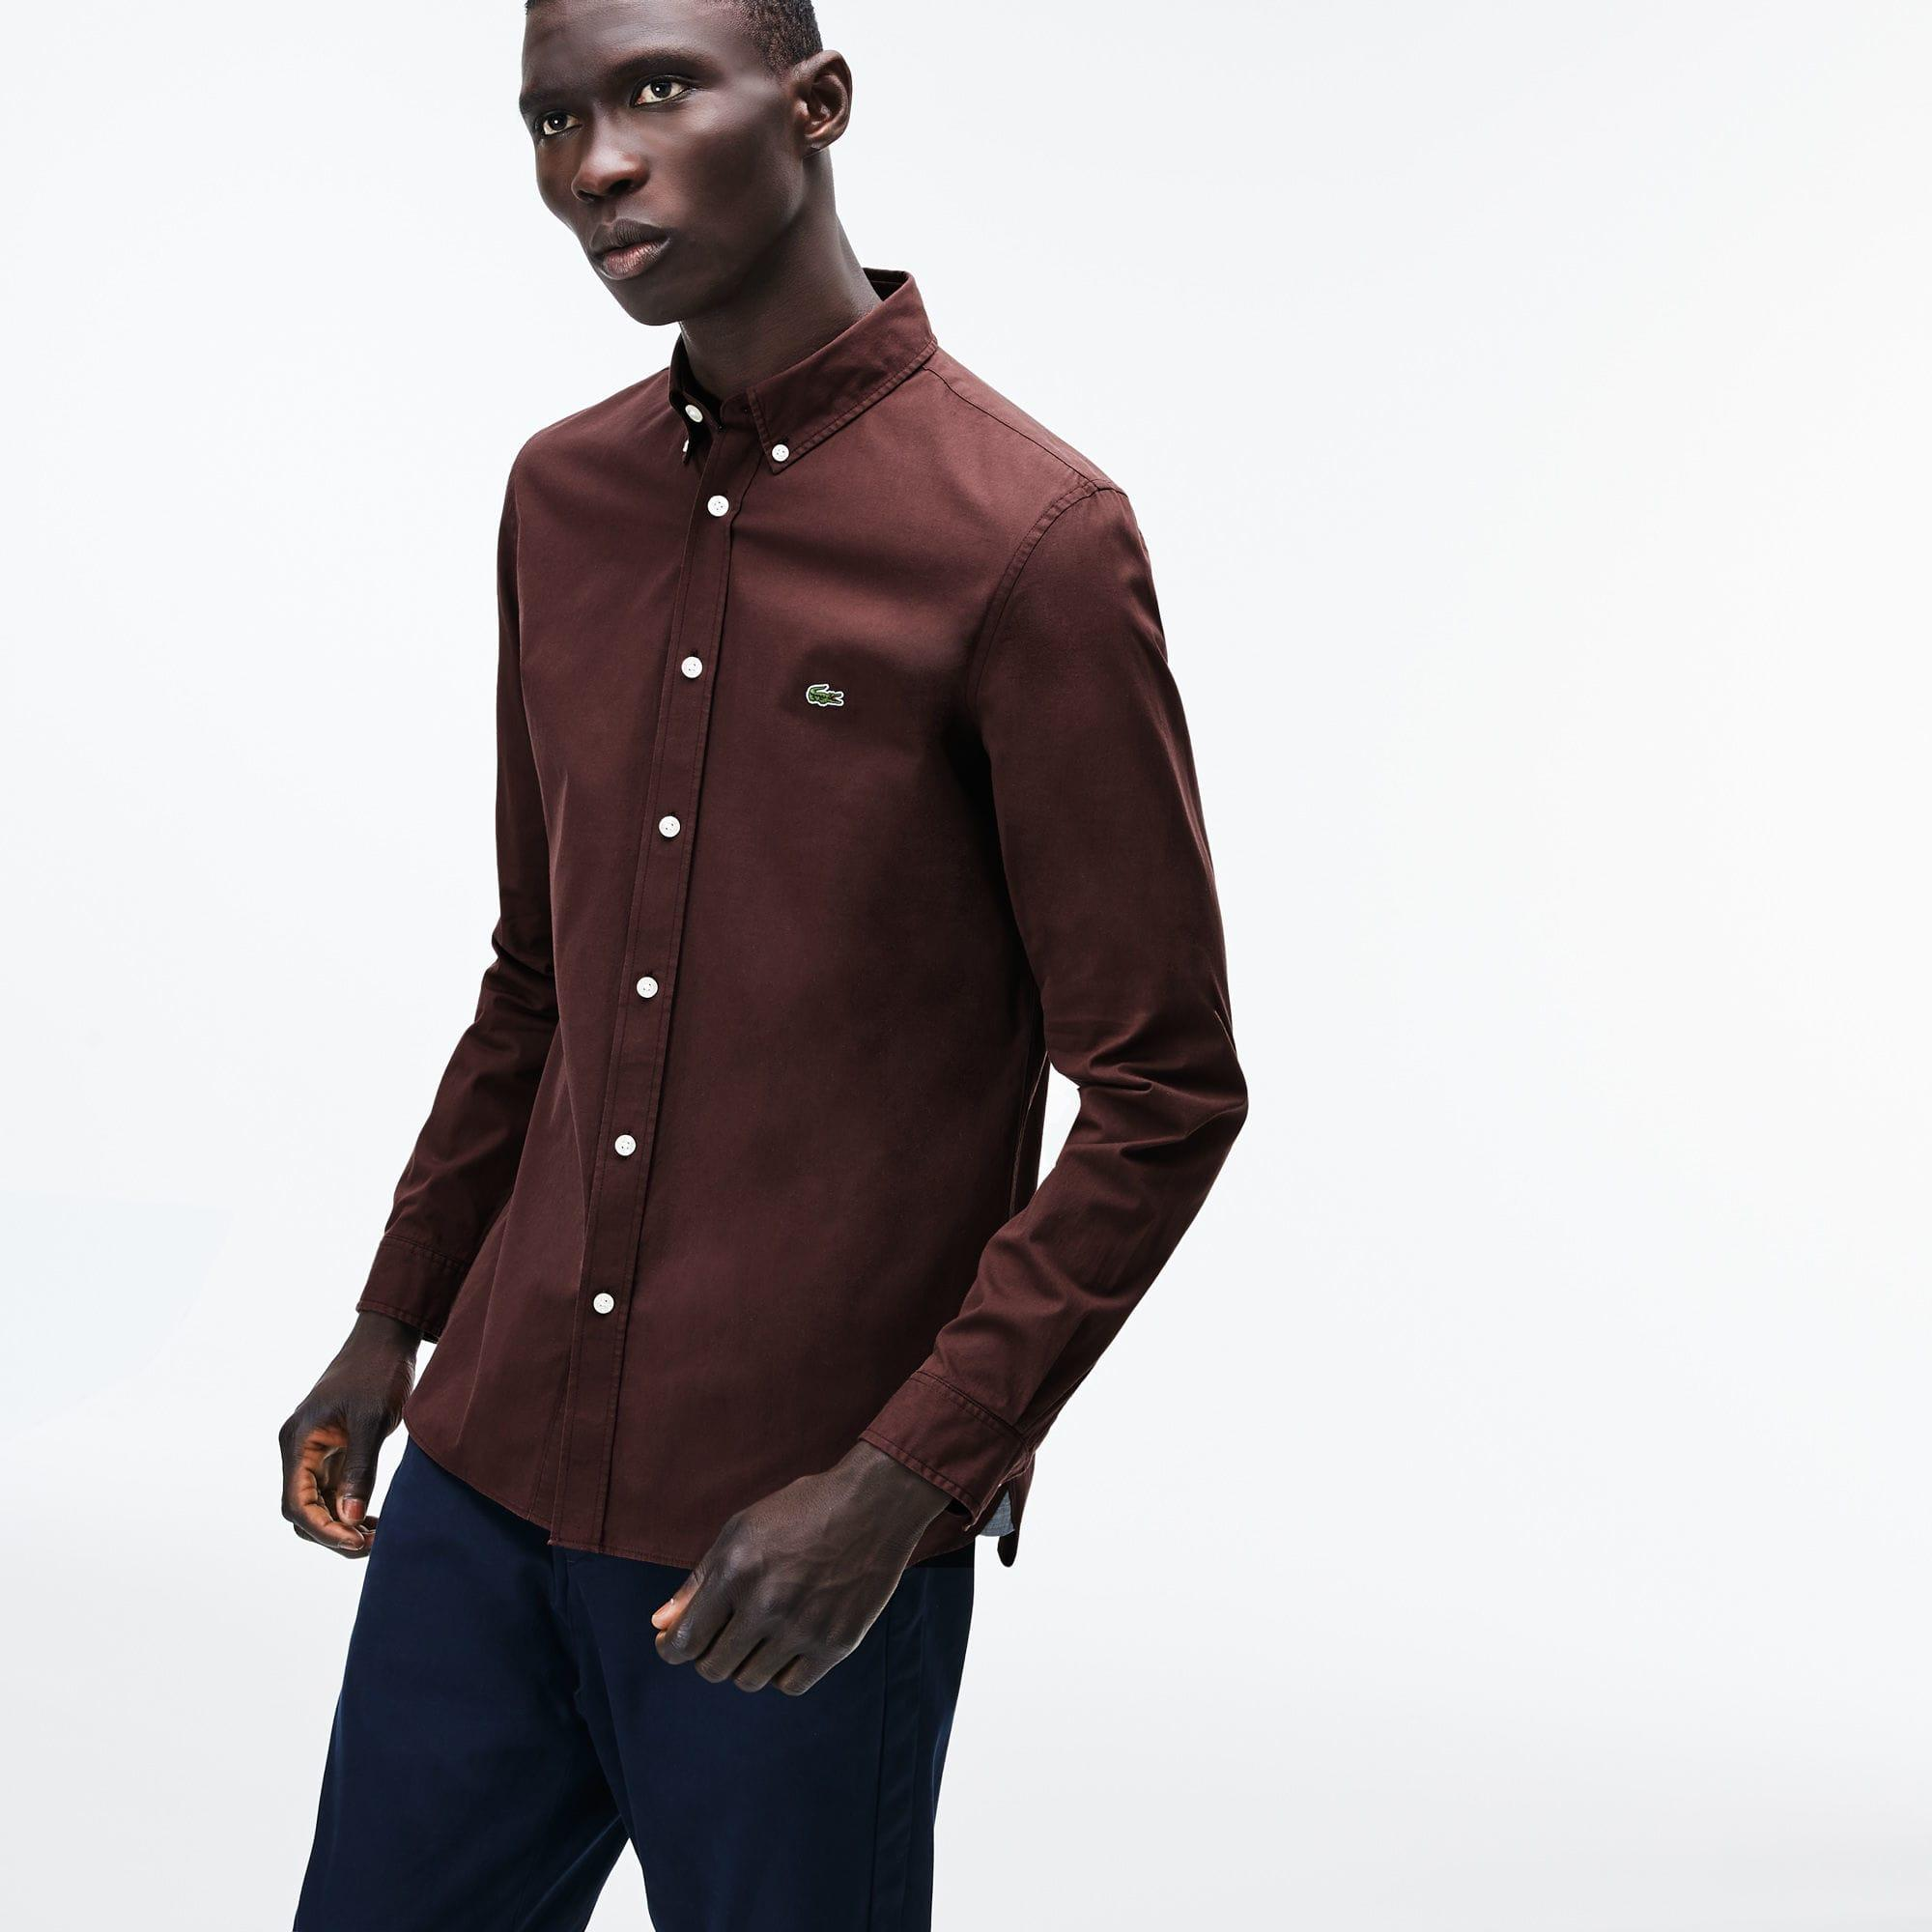 a31a9bbe30 Lacoste Slim Fit Stretch Cotton Poplin Shirt in Brown for Men - Lyst